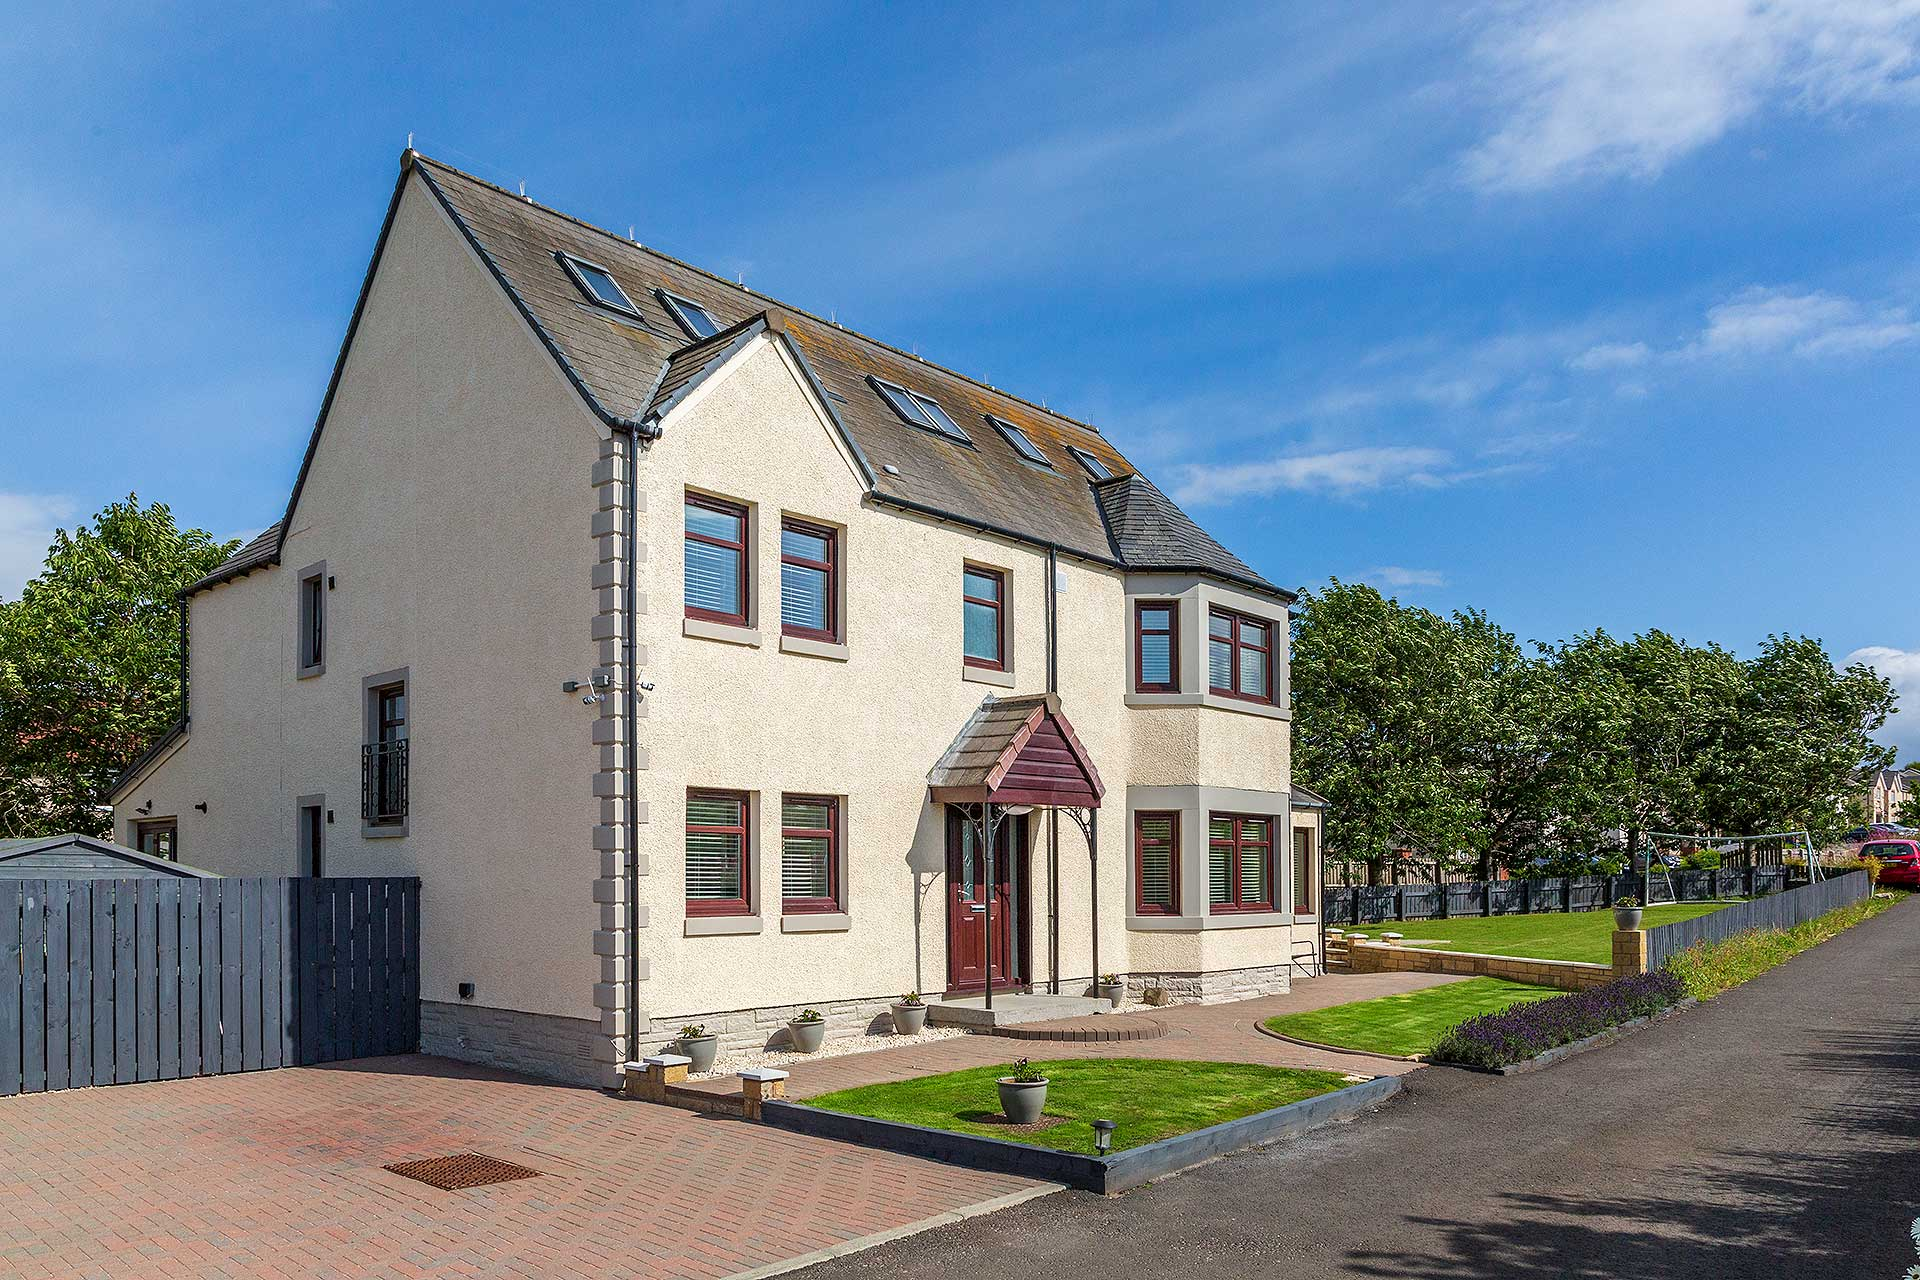 6 Bedroom House for sale in Winchburgh